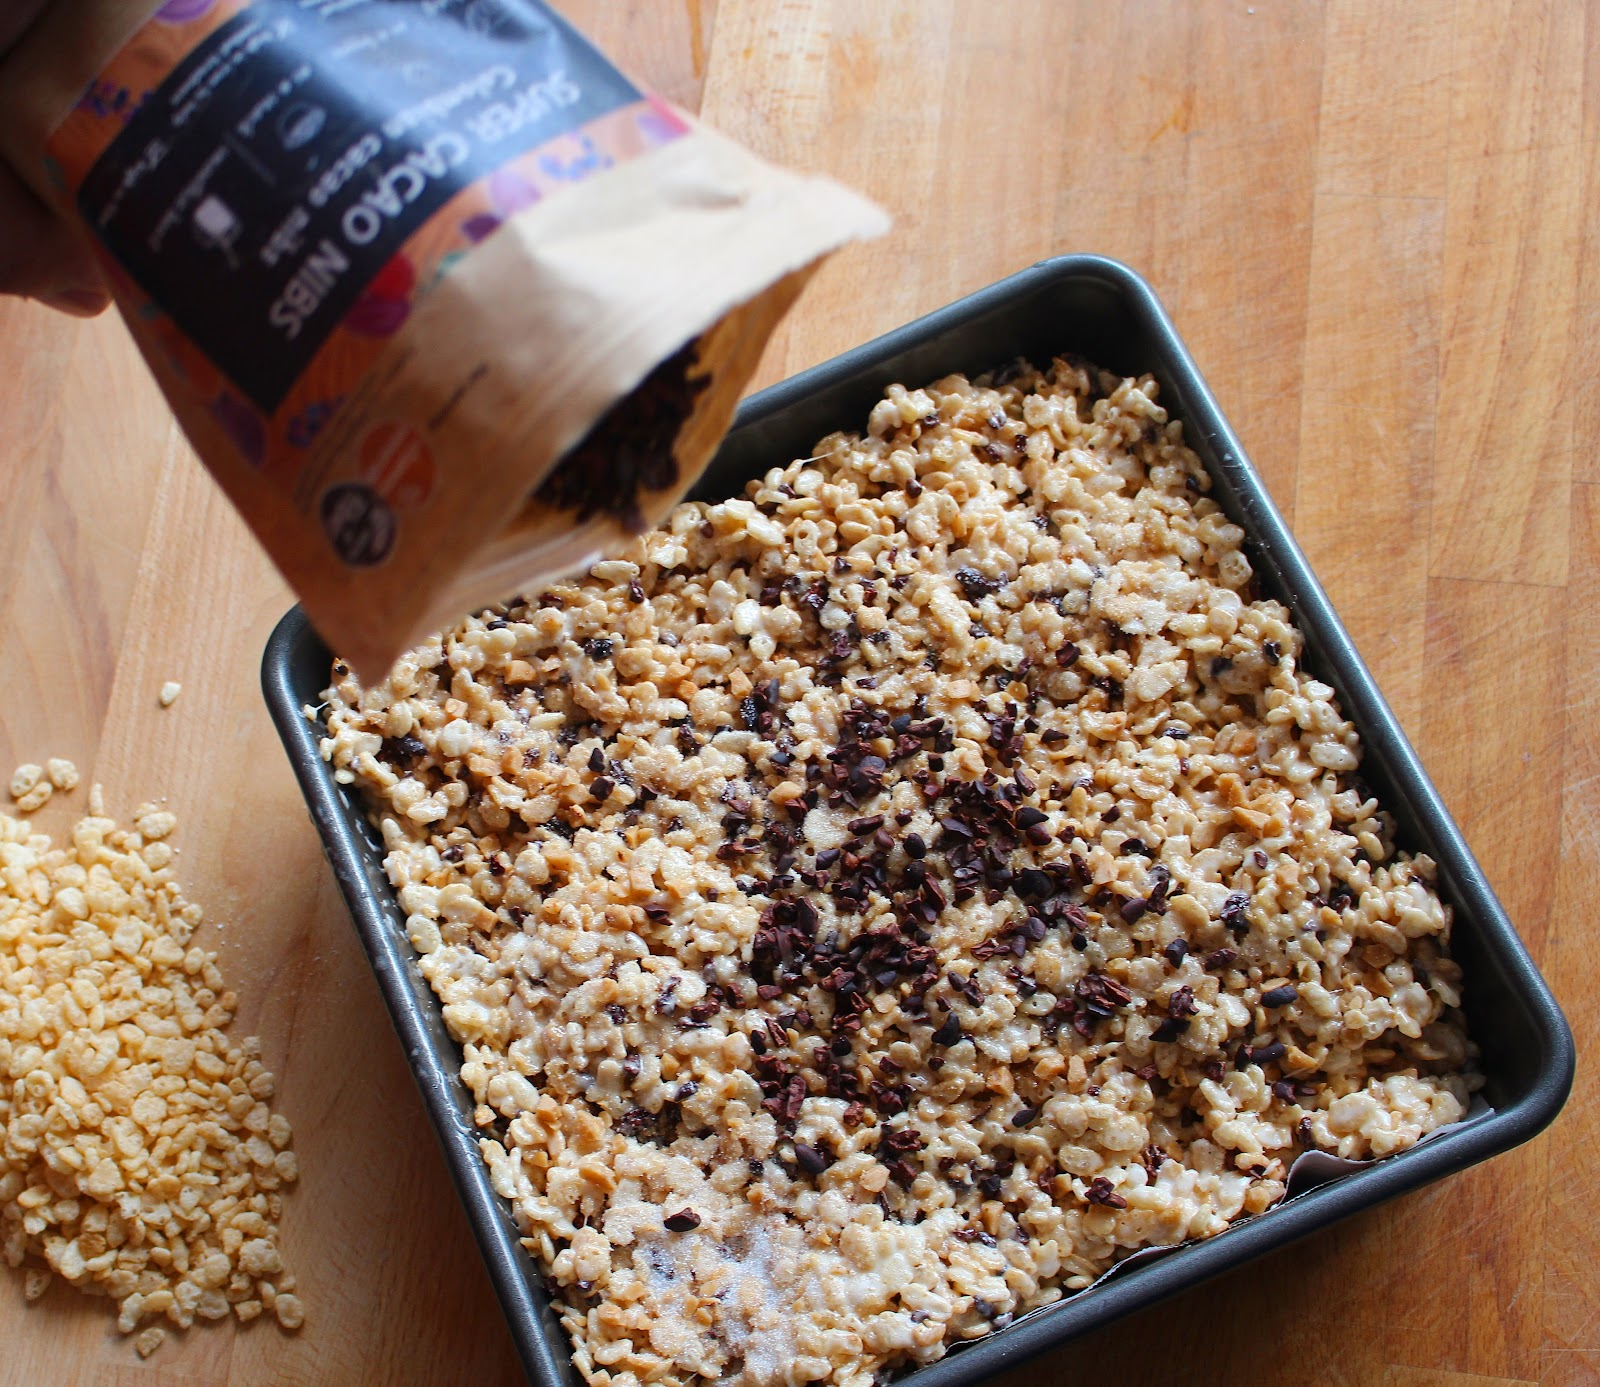 Fatgirl Hedonist: Cacao Nib Rice Krispie Treat Recipe